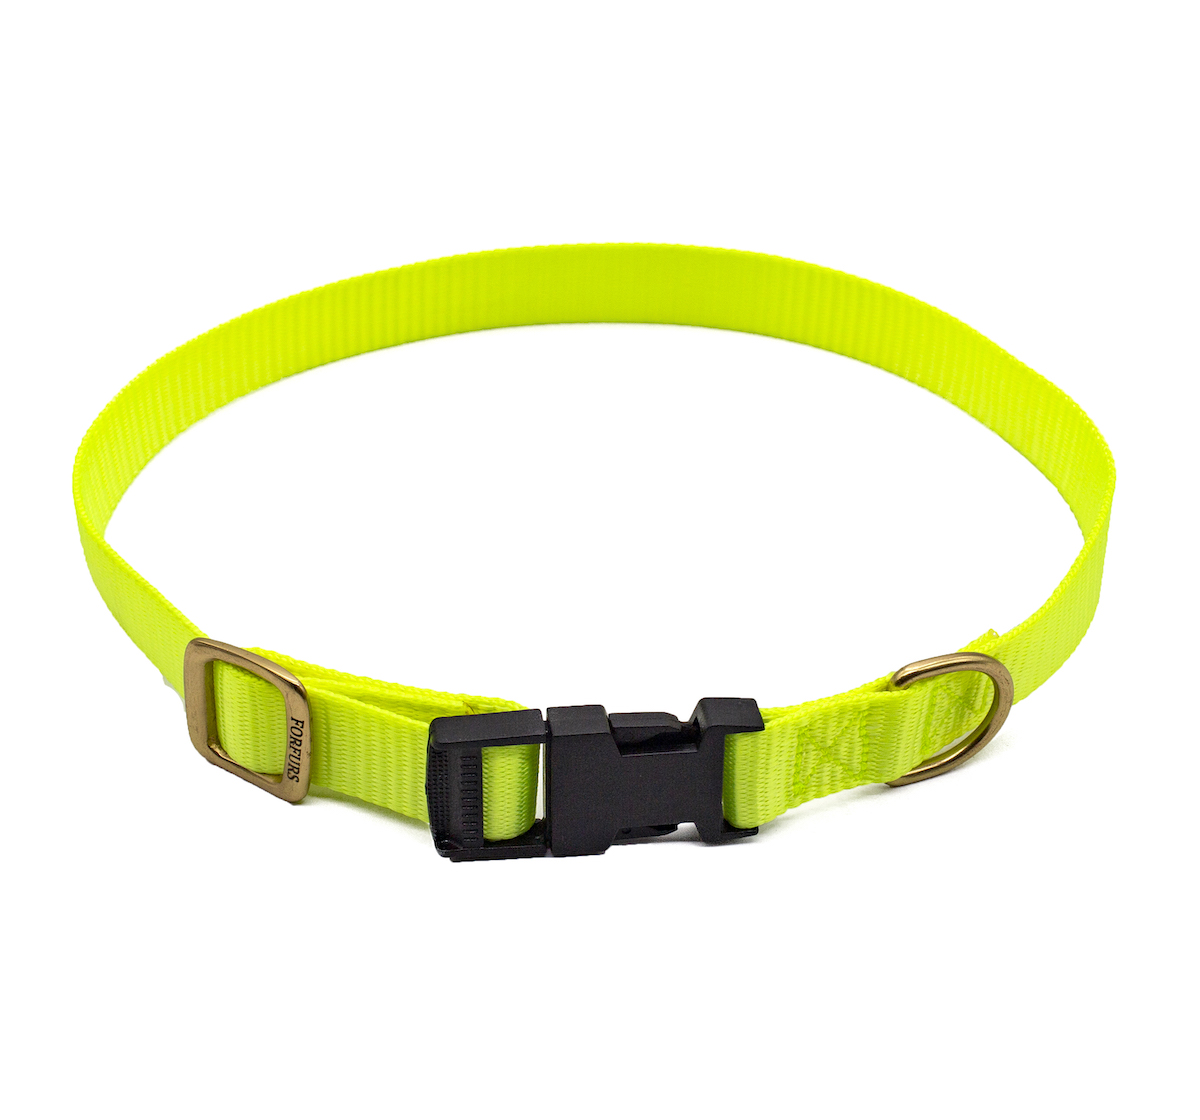 Forfurs Adjustable Classic Dog Collar Lime Green - Medium